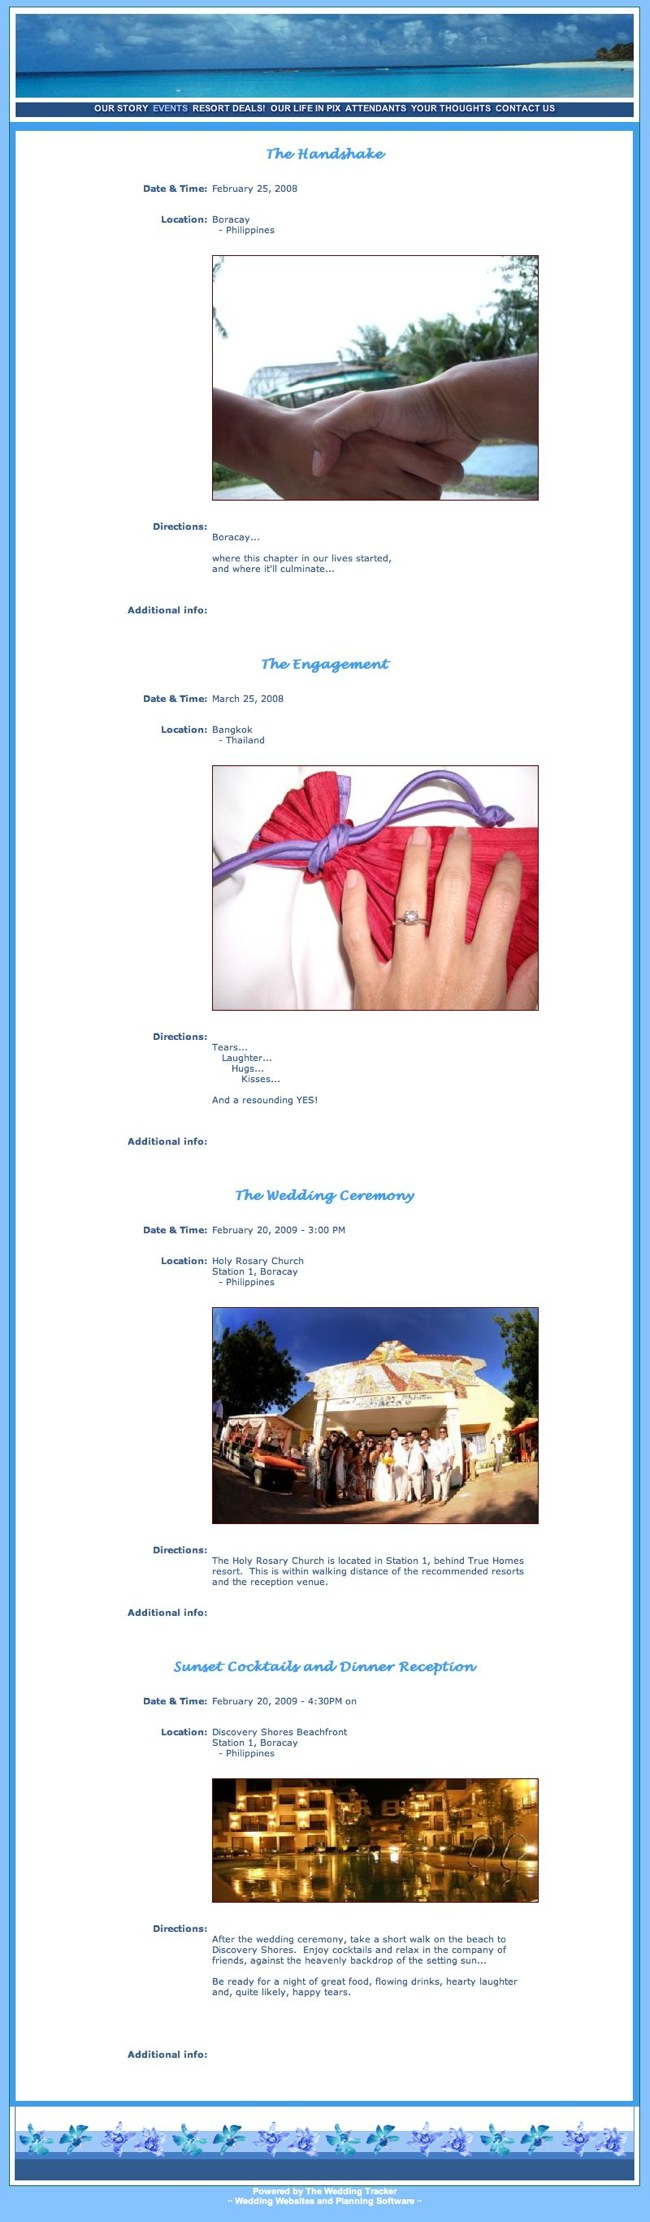 gil-and-christine-wedding-website-events20080718.jpg